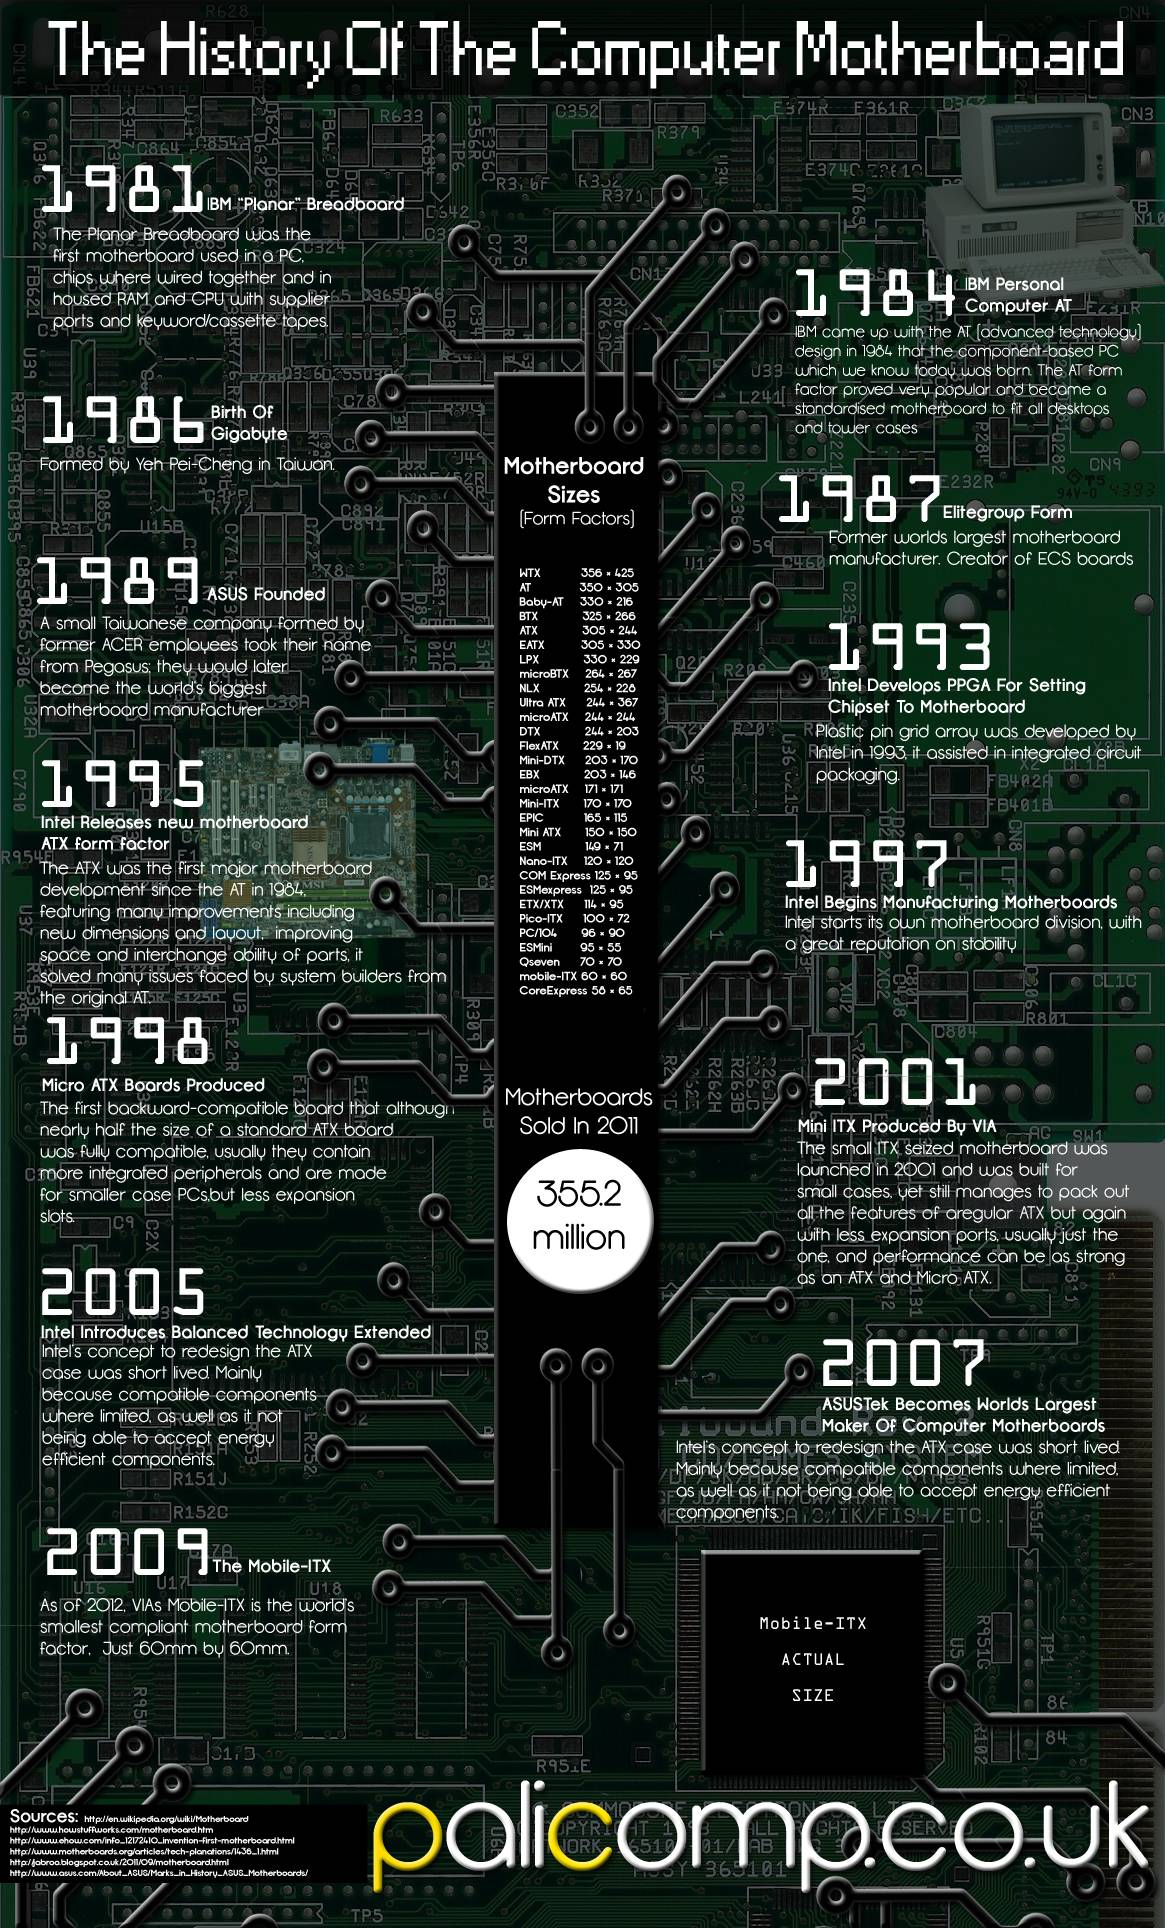 infographic-history-of-the-computer-motherboard_506027137b099